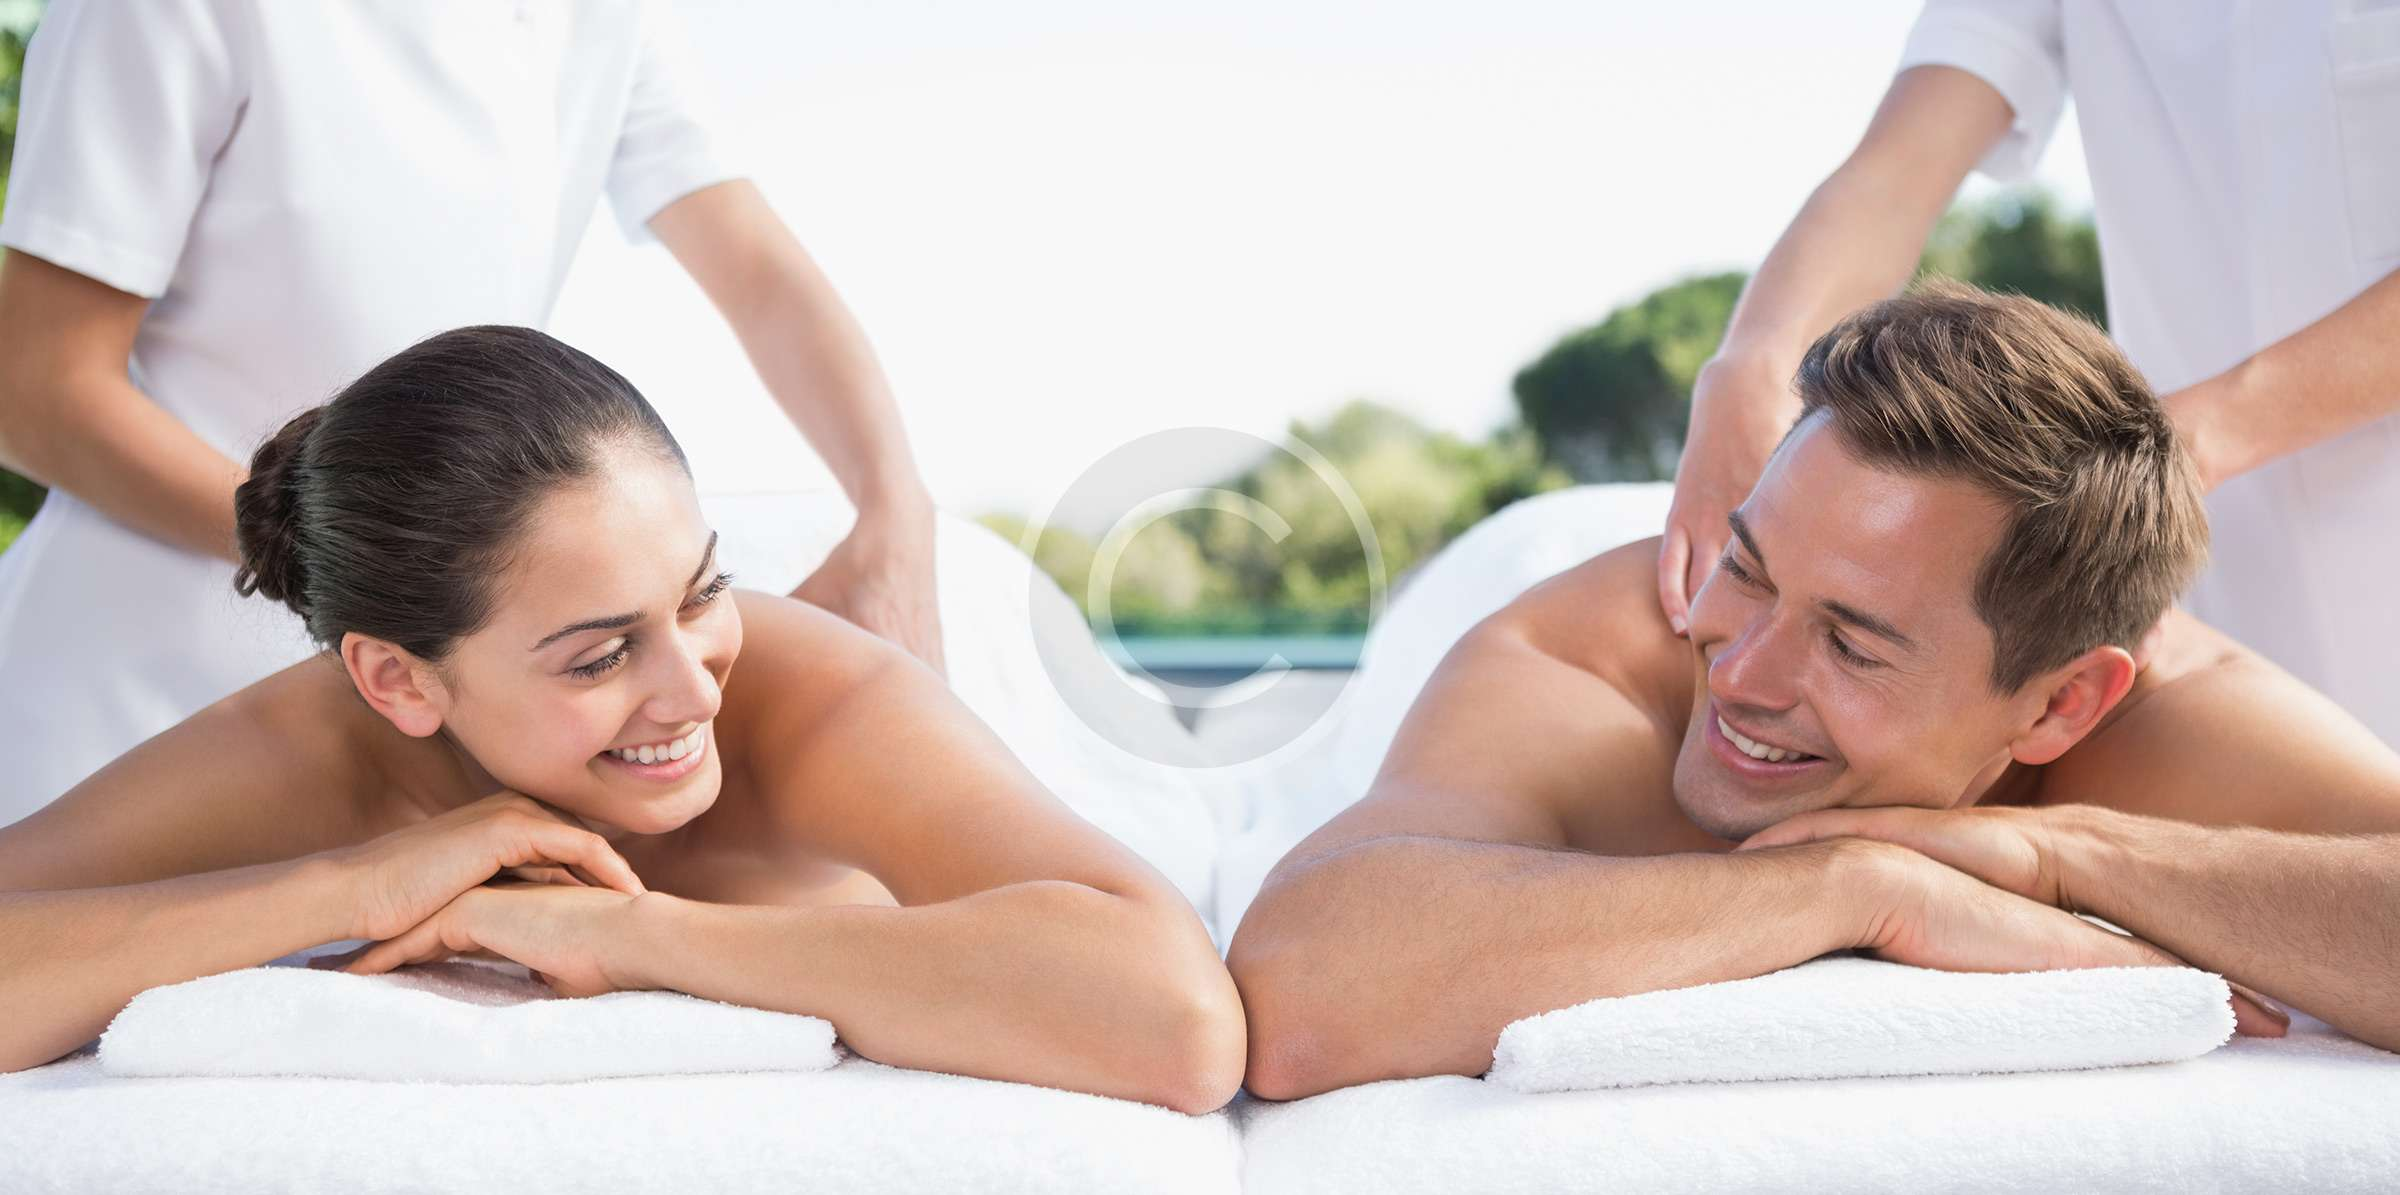 How to Get the Most Out of Your Massage